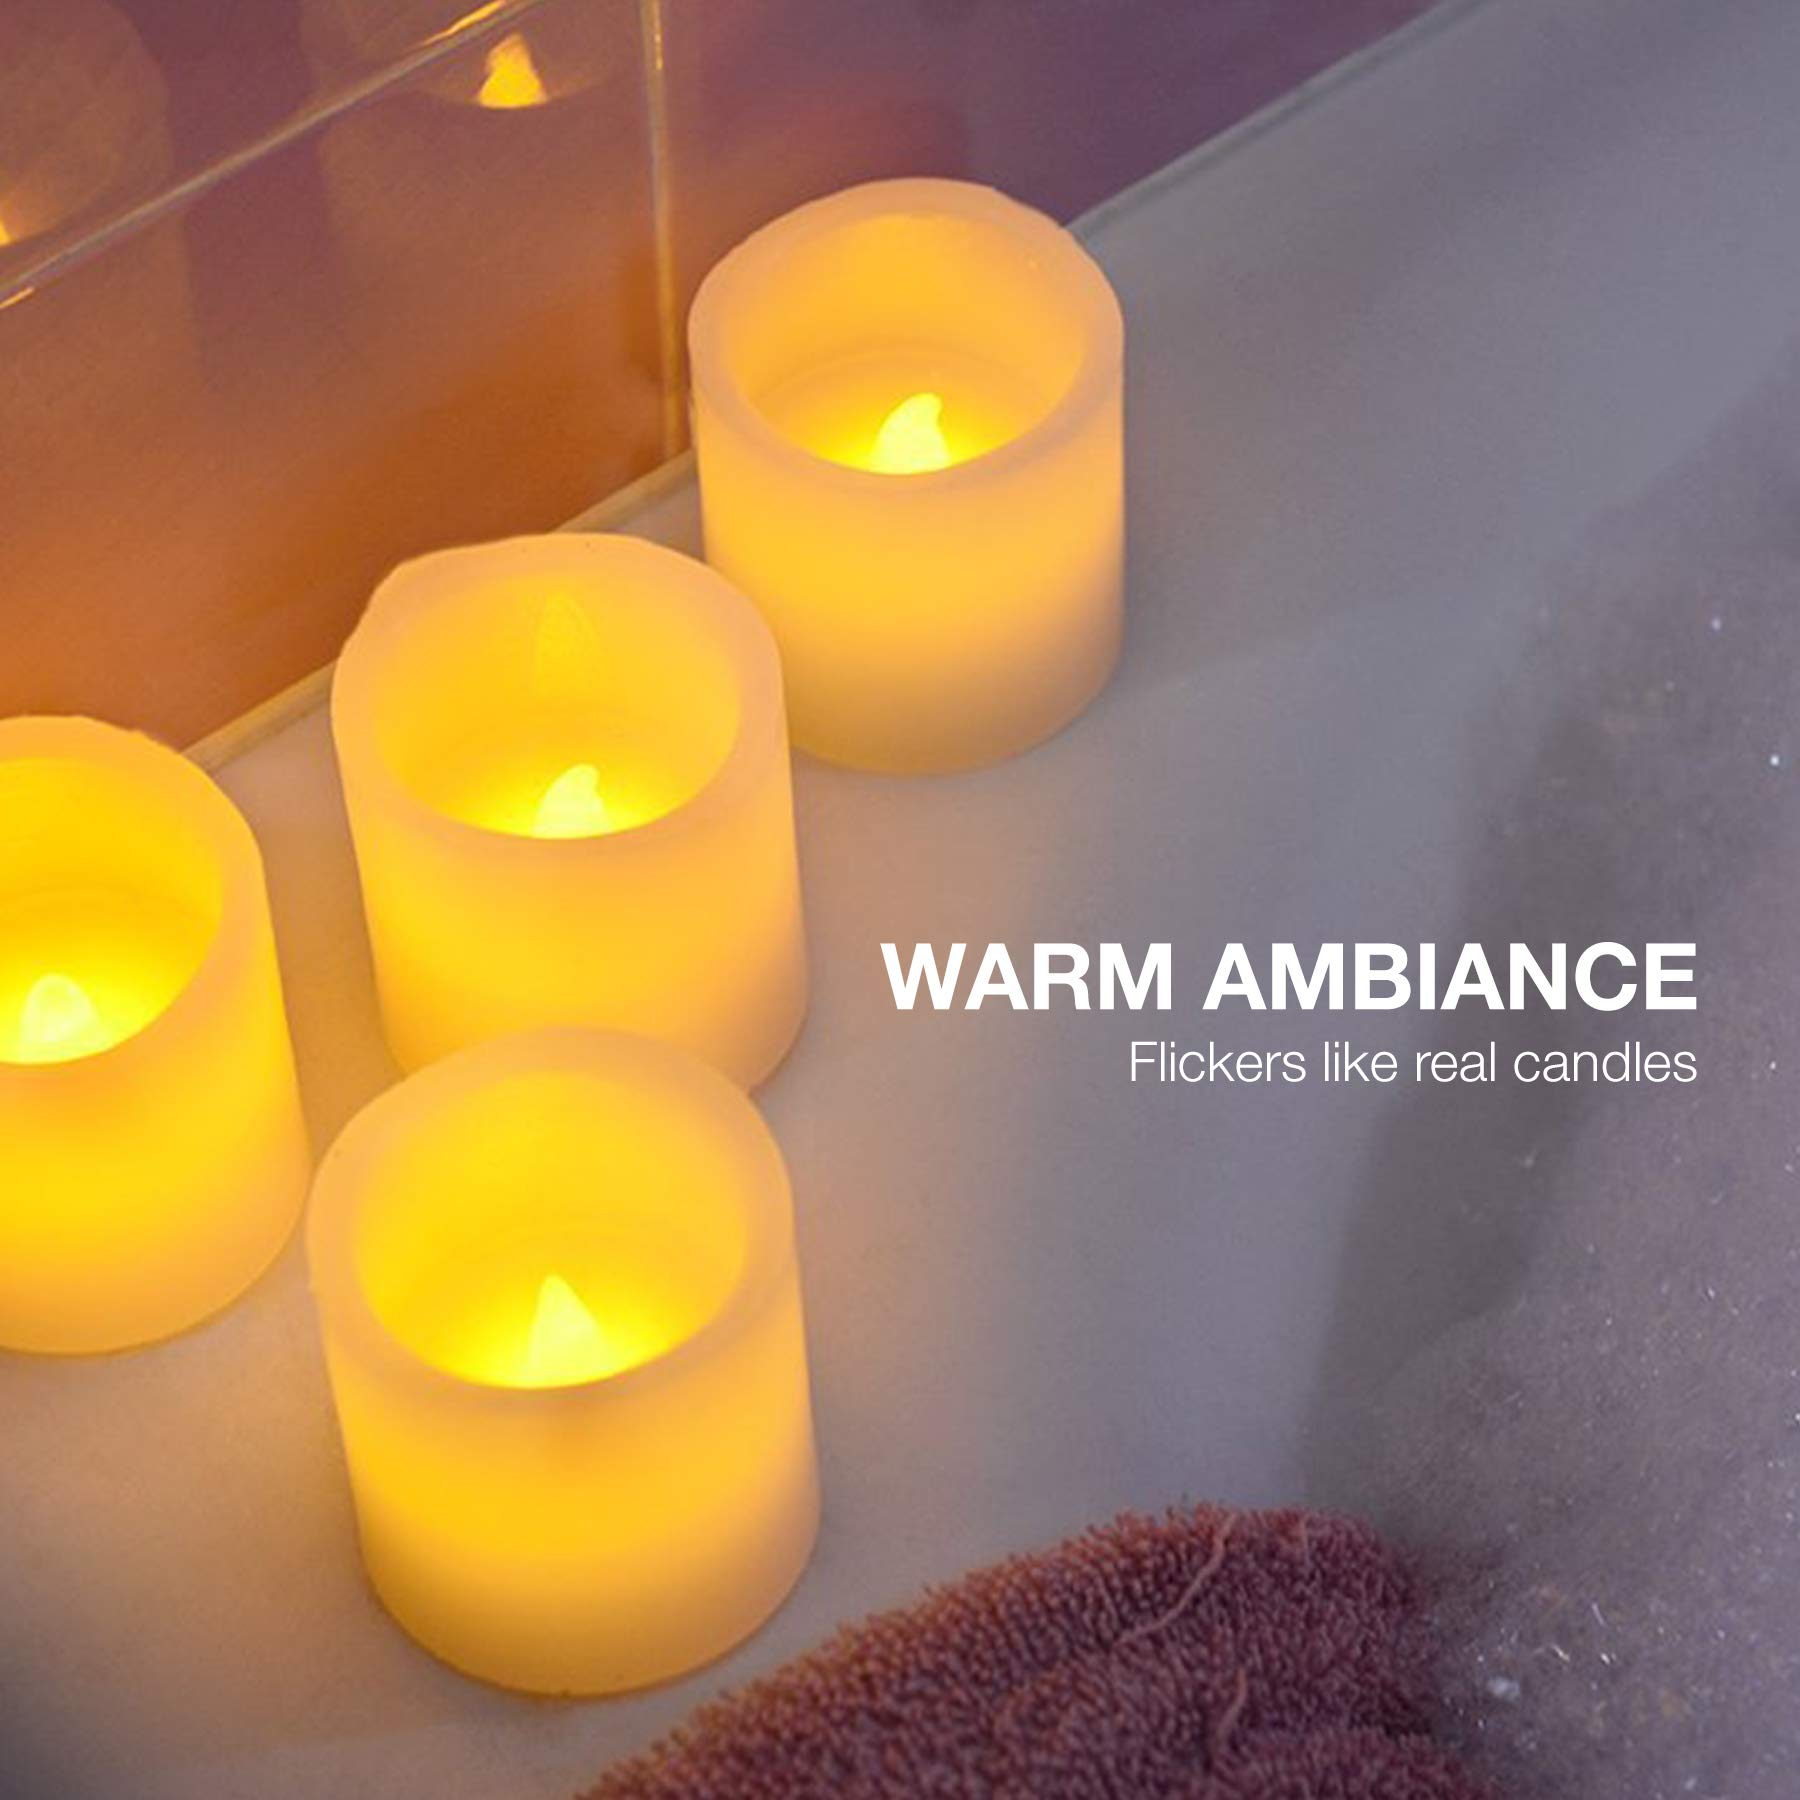 Vont Flameless LED Candles, Flickering, Battery Powered, Real Wax, Realistic Decor Unscented, 6 Pack, Yellow Light by Vont (Image #5)